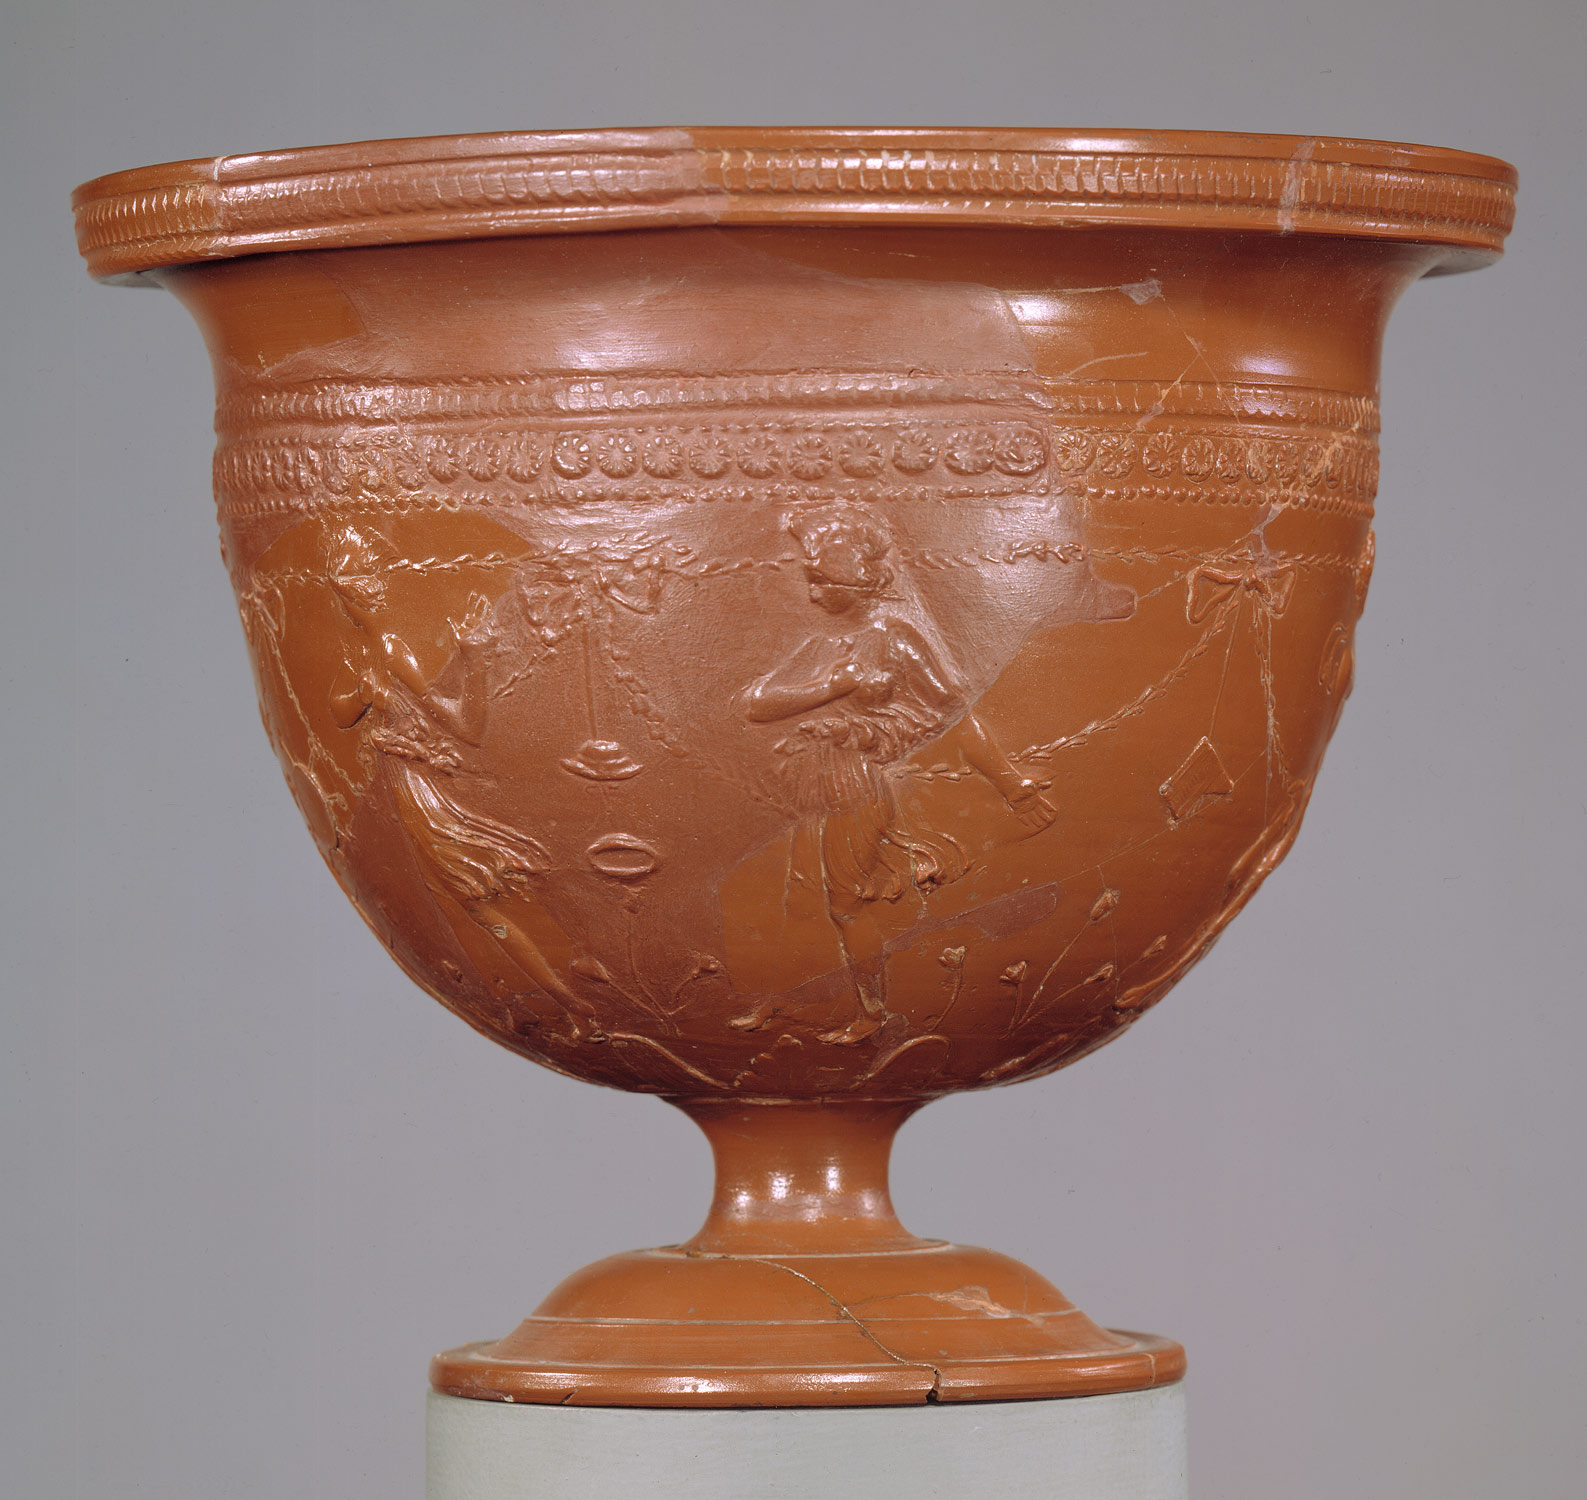 Terracotta Bowl Work Of Art Heilbrunn Timeline Of Art